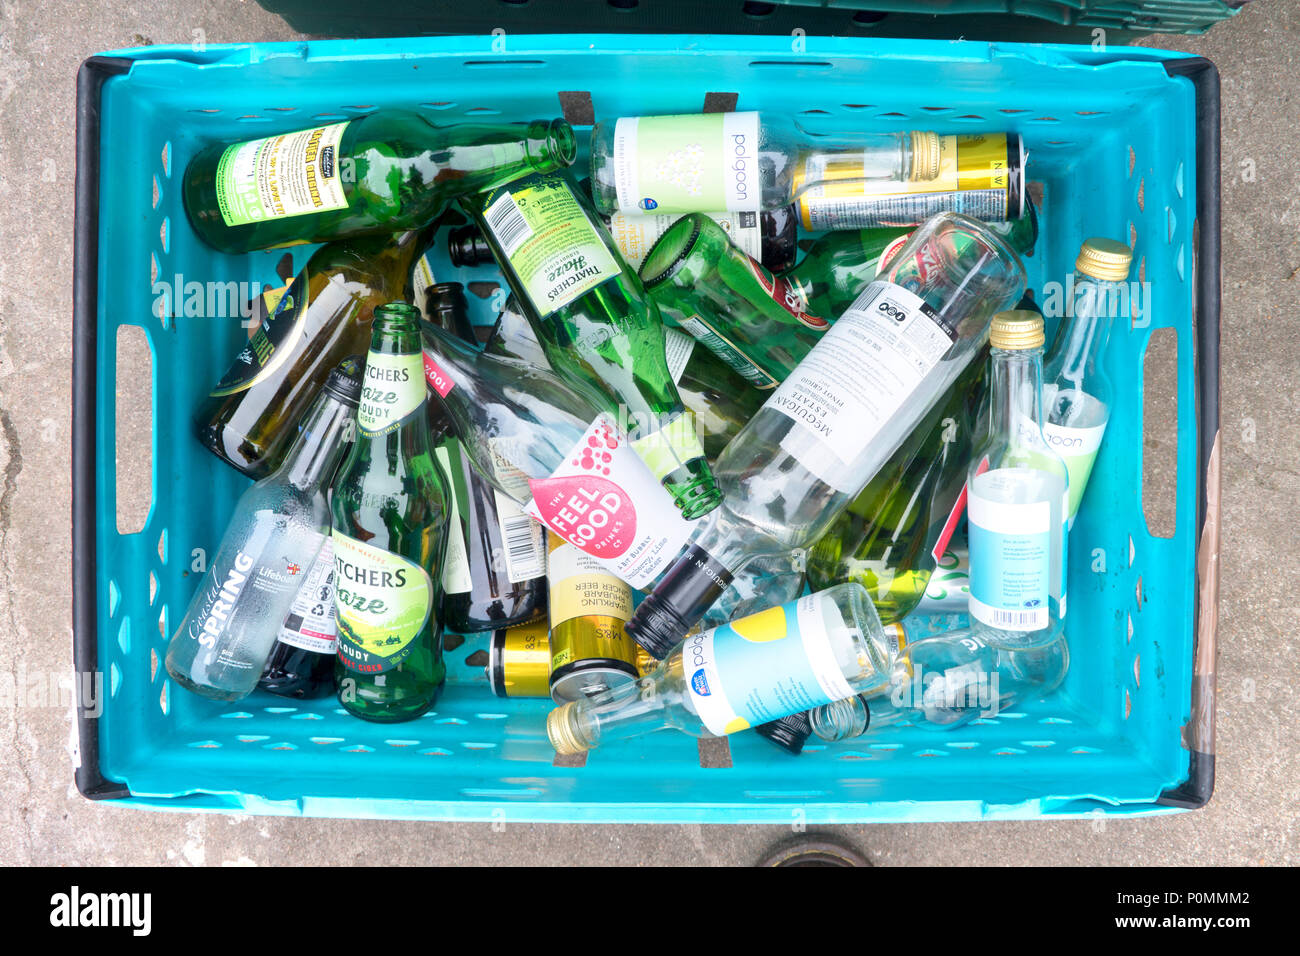 Overhead view of a basket of bottles waiting to be recycled - John Gollop - Stock Image